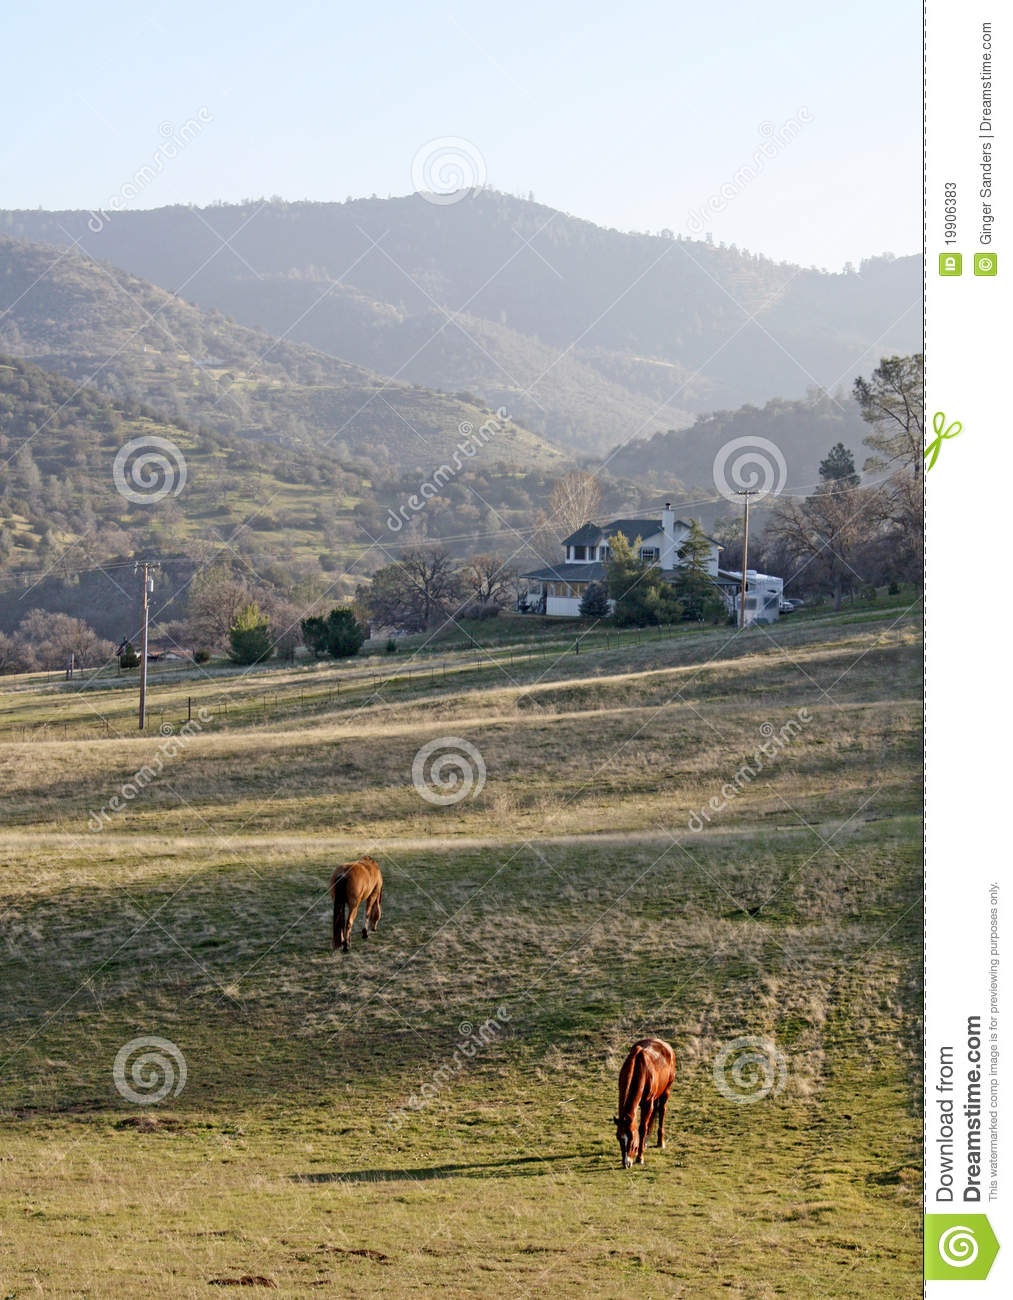 A Field of Grazing Horses In The Sun